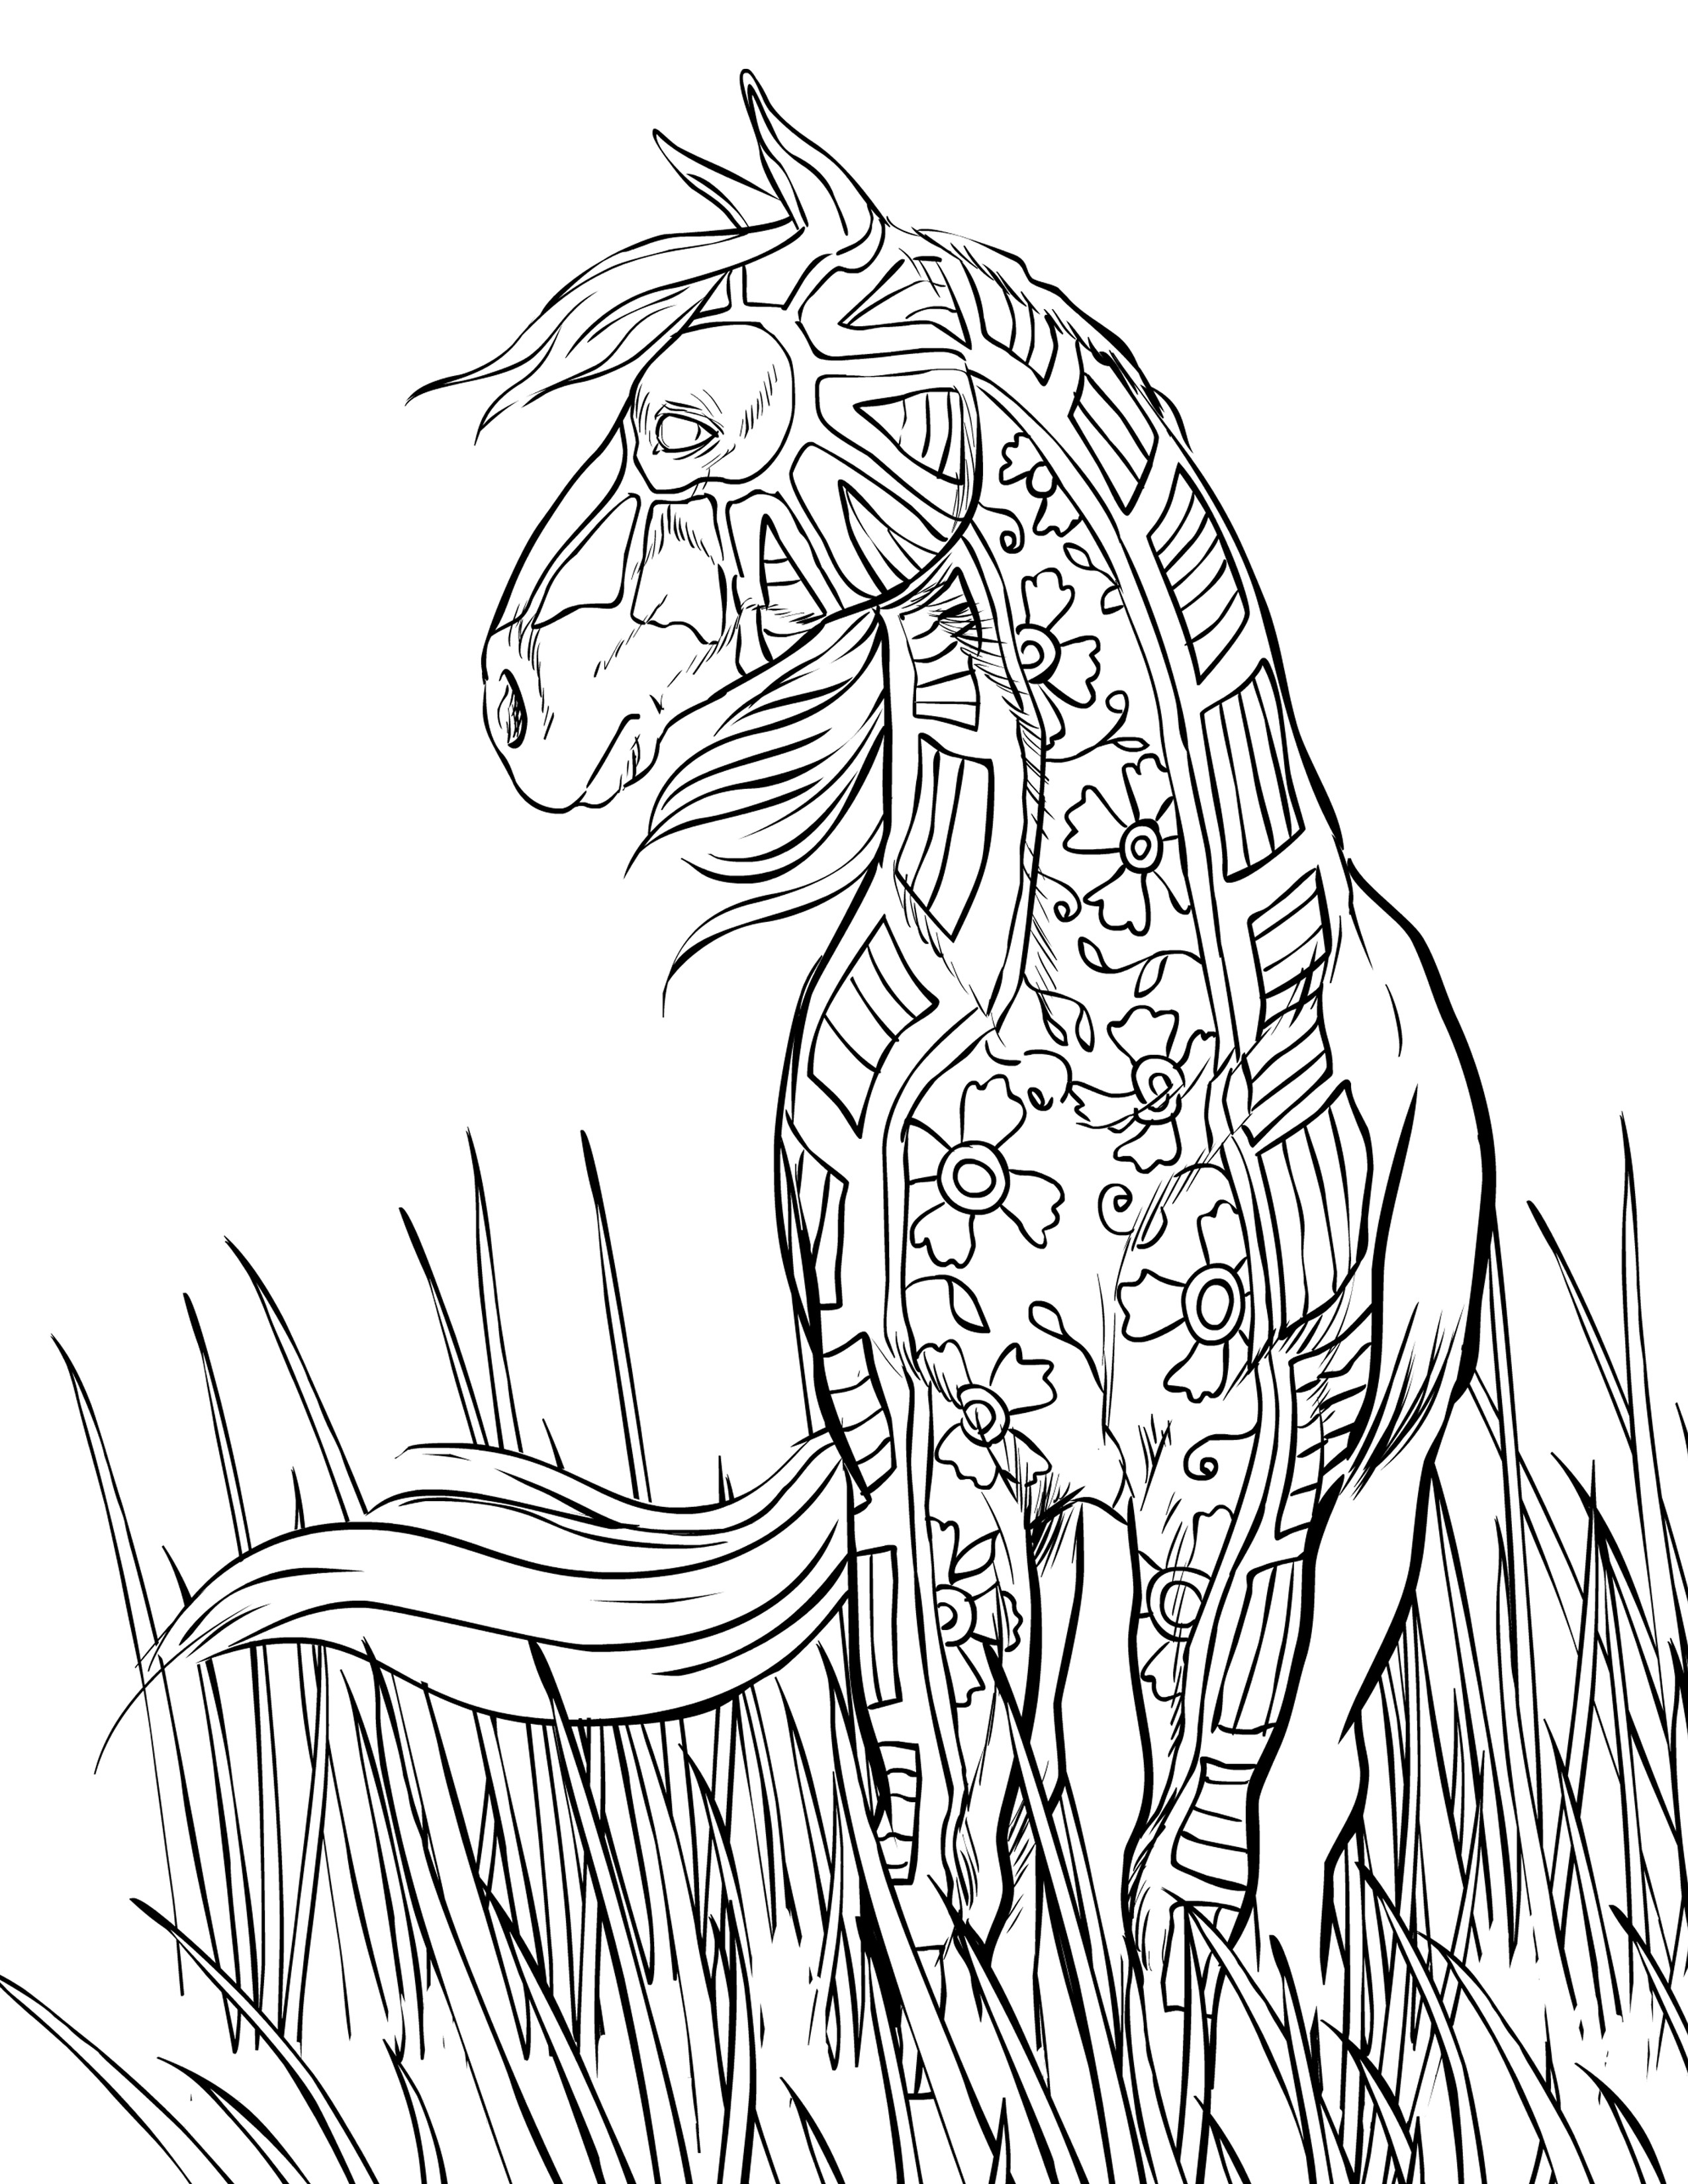 Best ideas about Horses Coloring Pages For Adults . Save or Pin FREE HORSE COLORING PAGES Now.